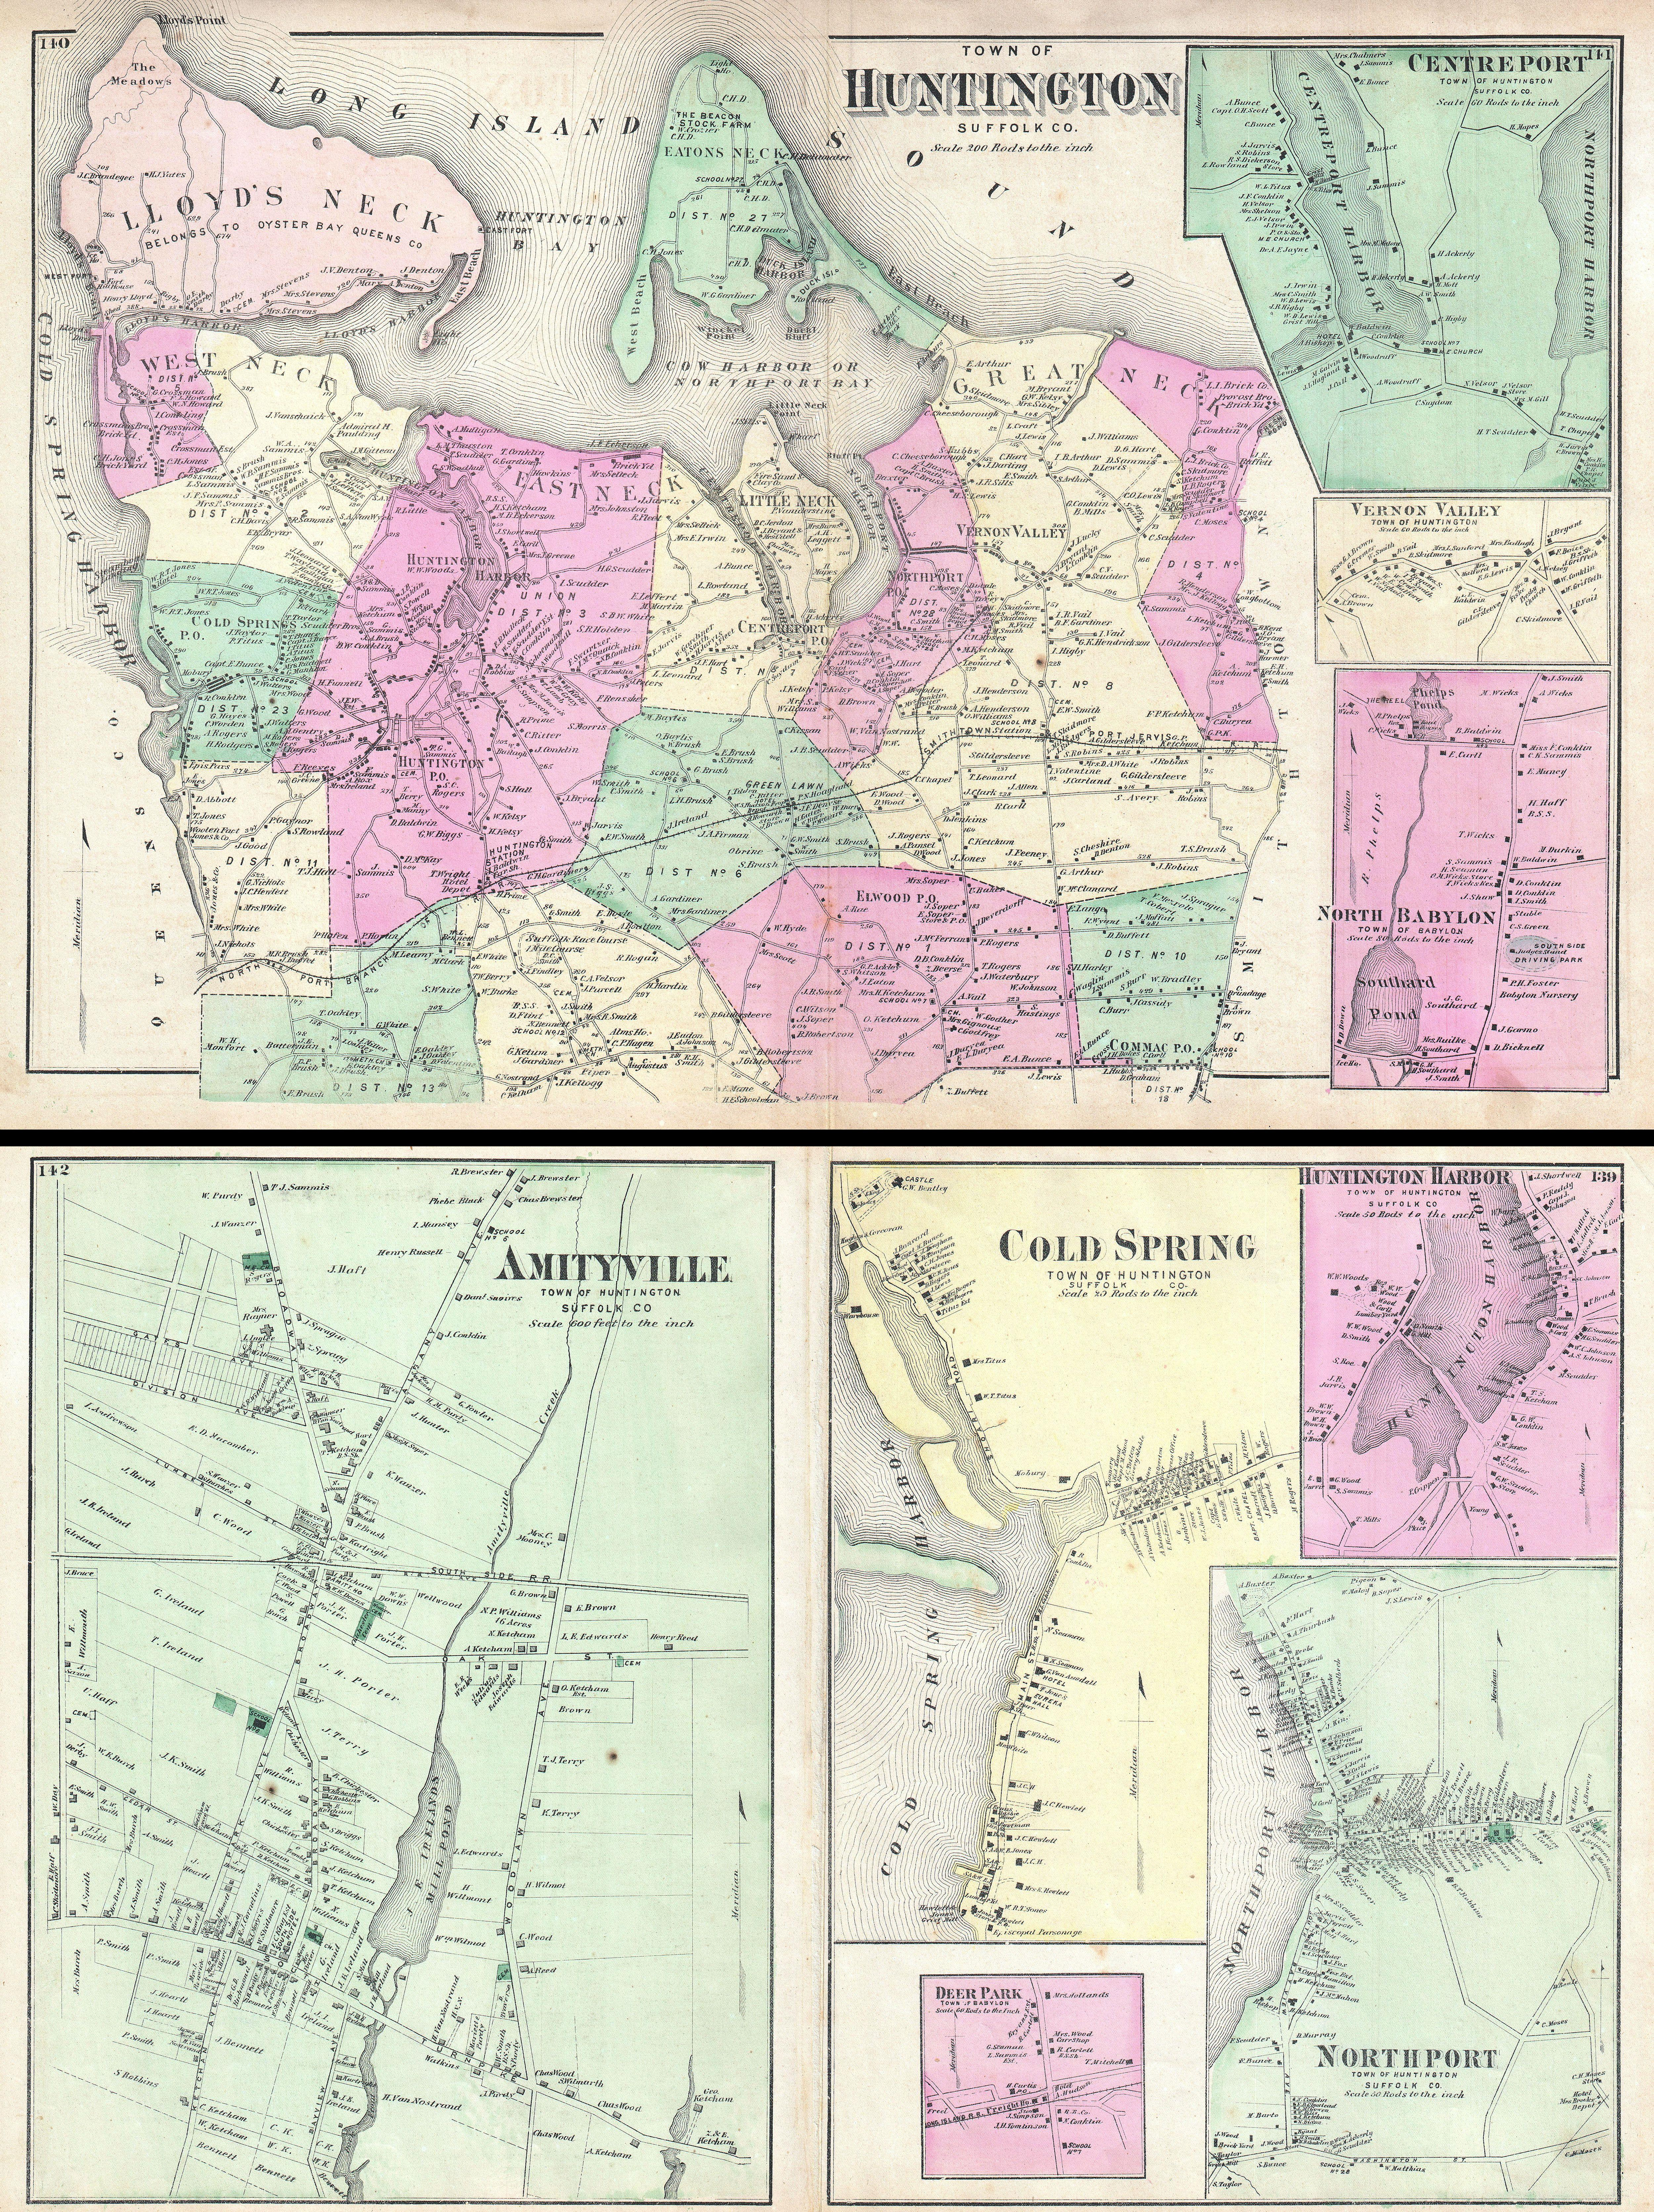 Huntington New York Map.File 1873 Beers Map Of Huntington And Amityville Long Island New